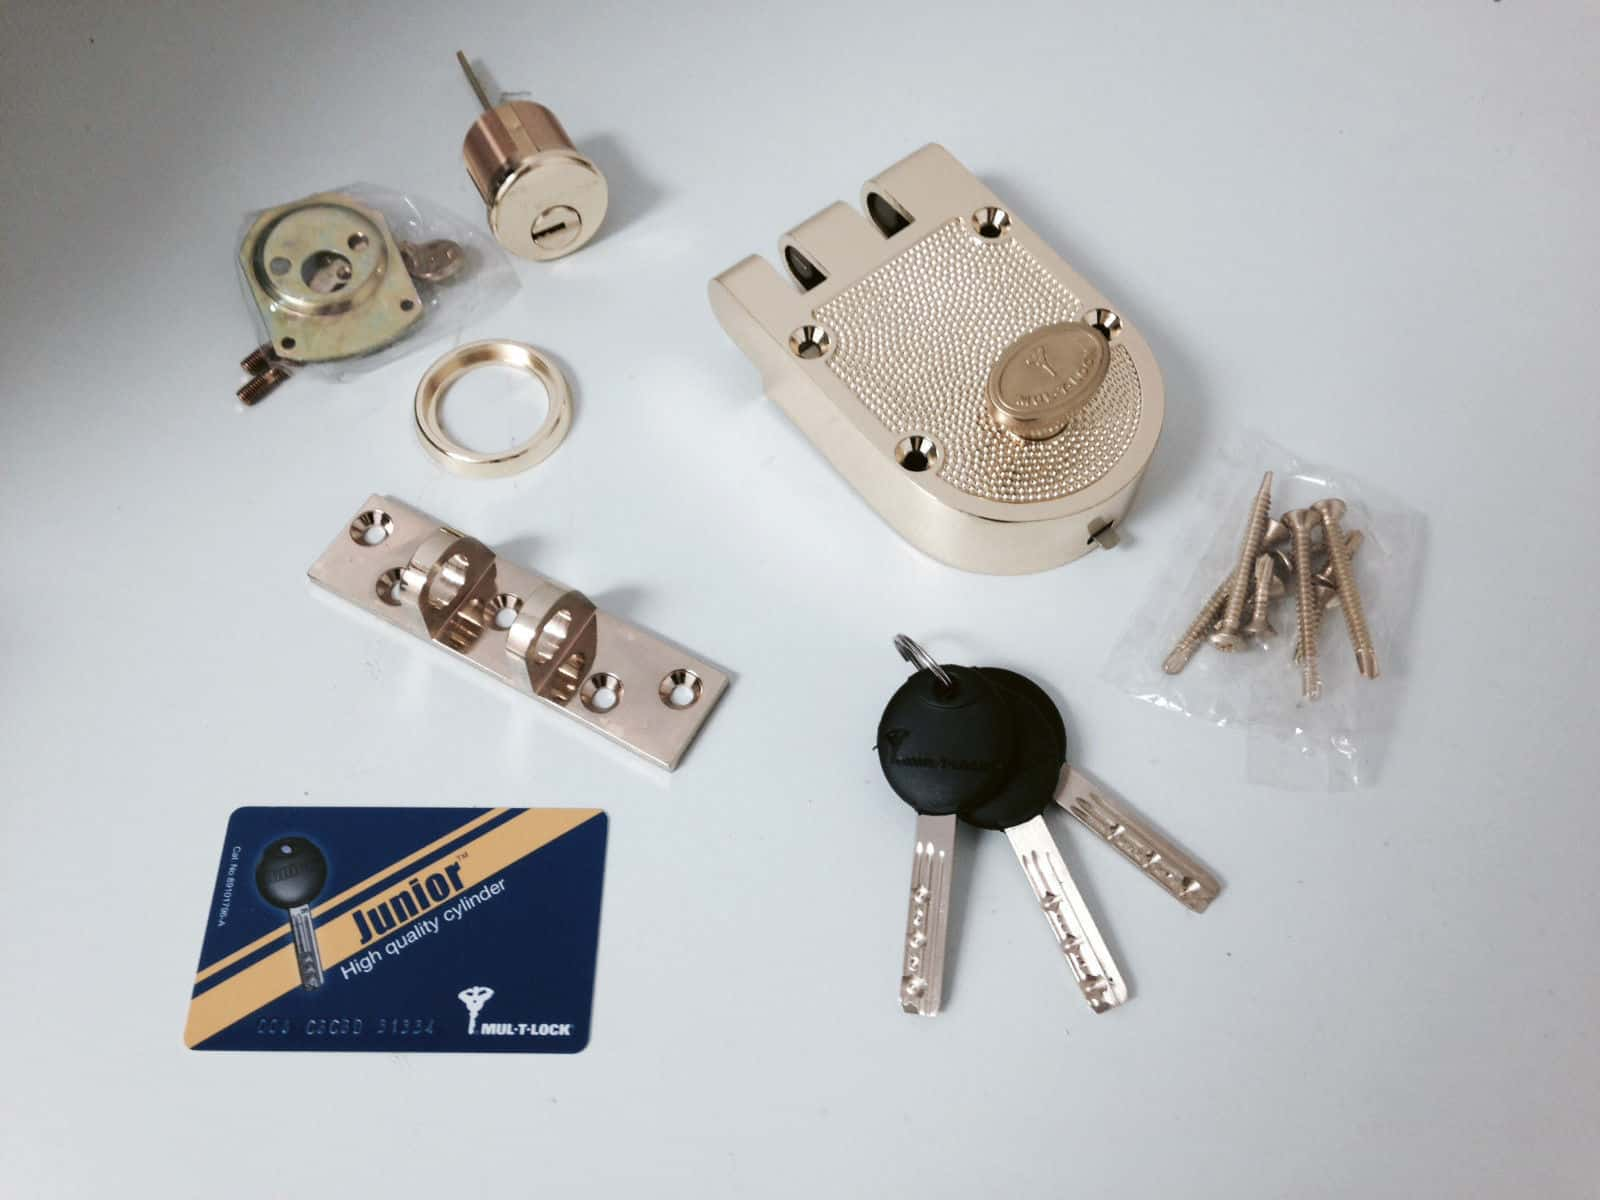 What to know about the locksmith company